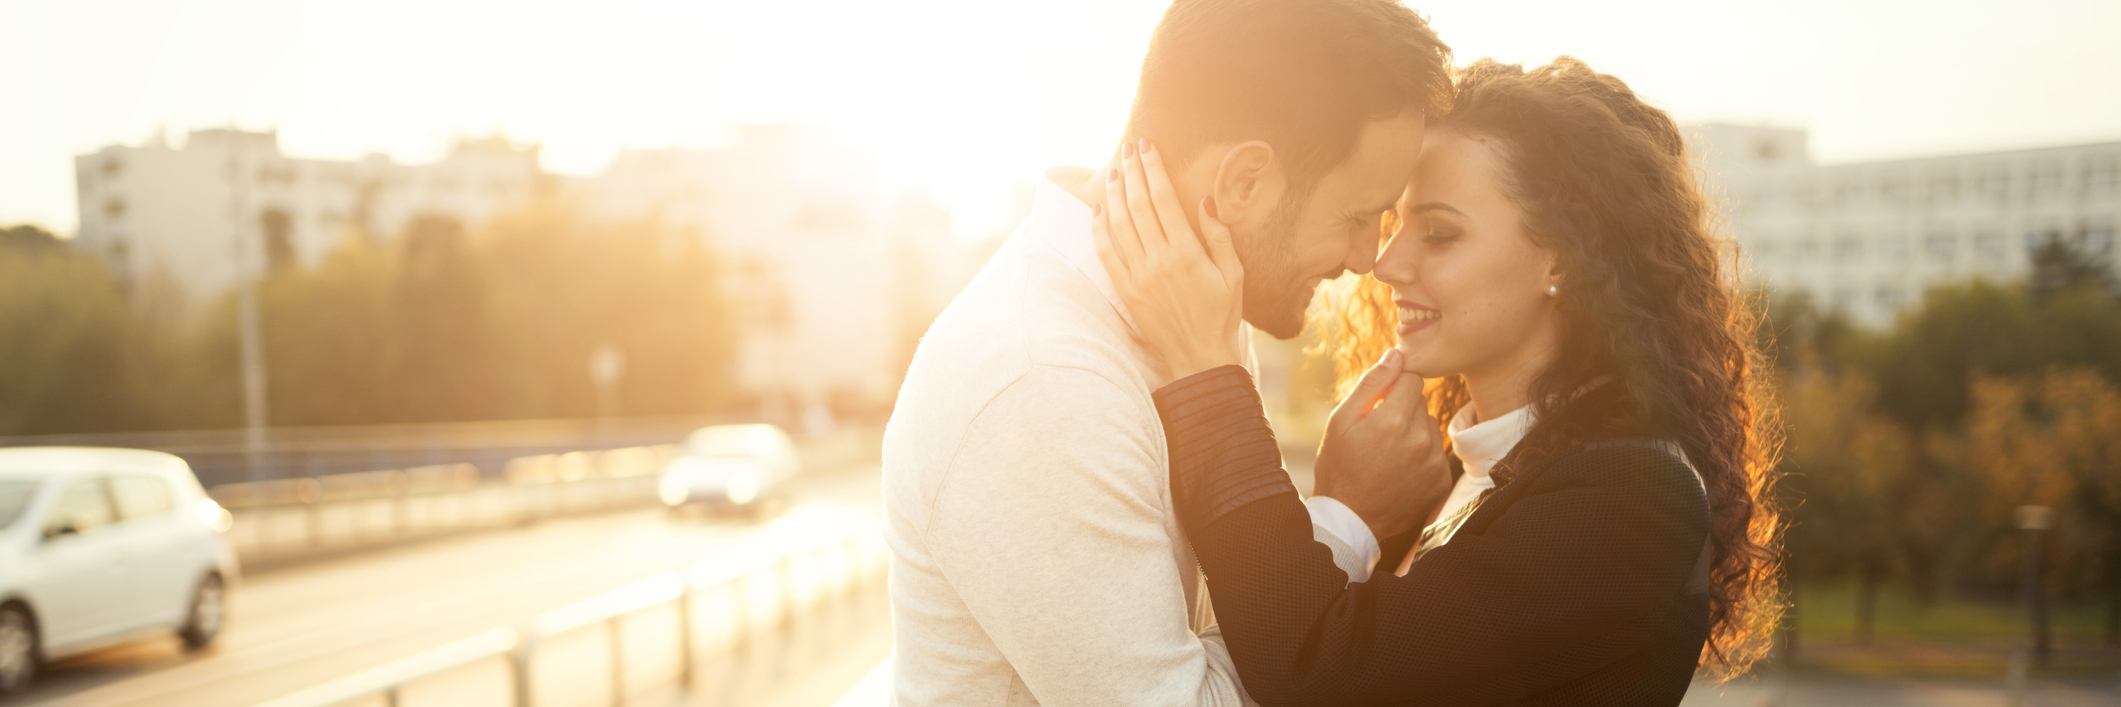 man and woman smiling at each other outdoors at sunset